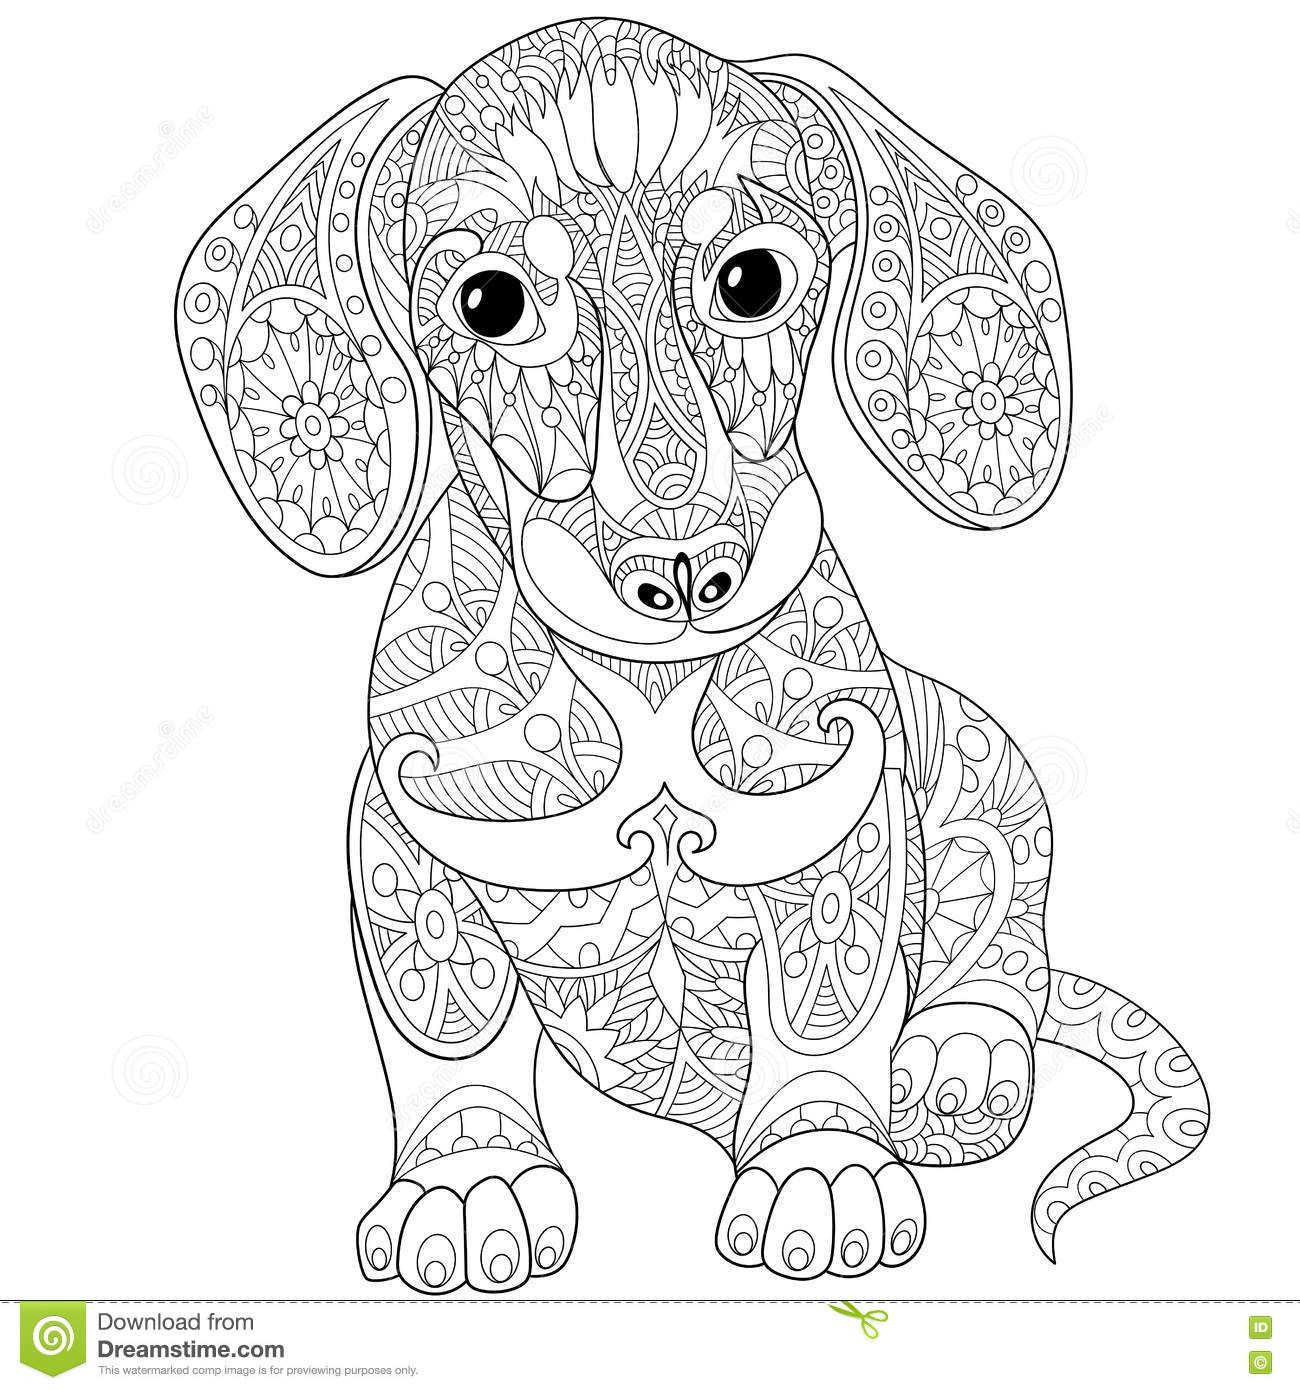 dog zentangle coloring pages pin on pen drawings coloring pages zentangle dog